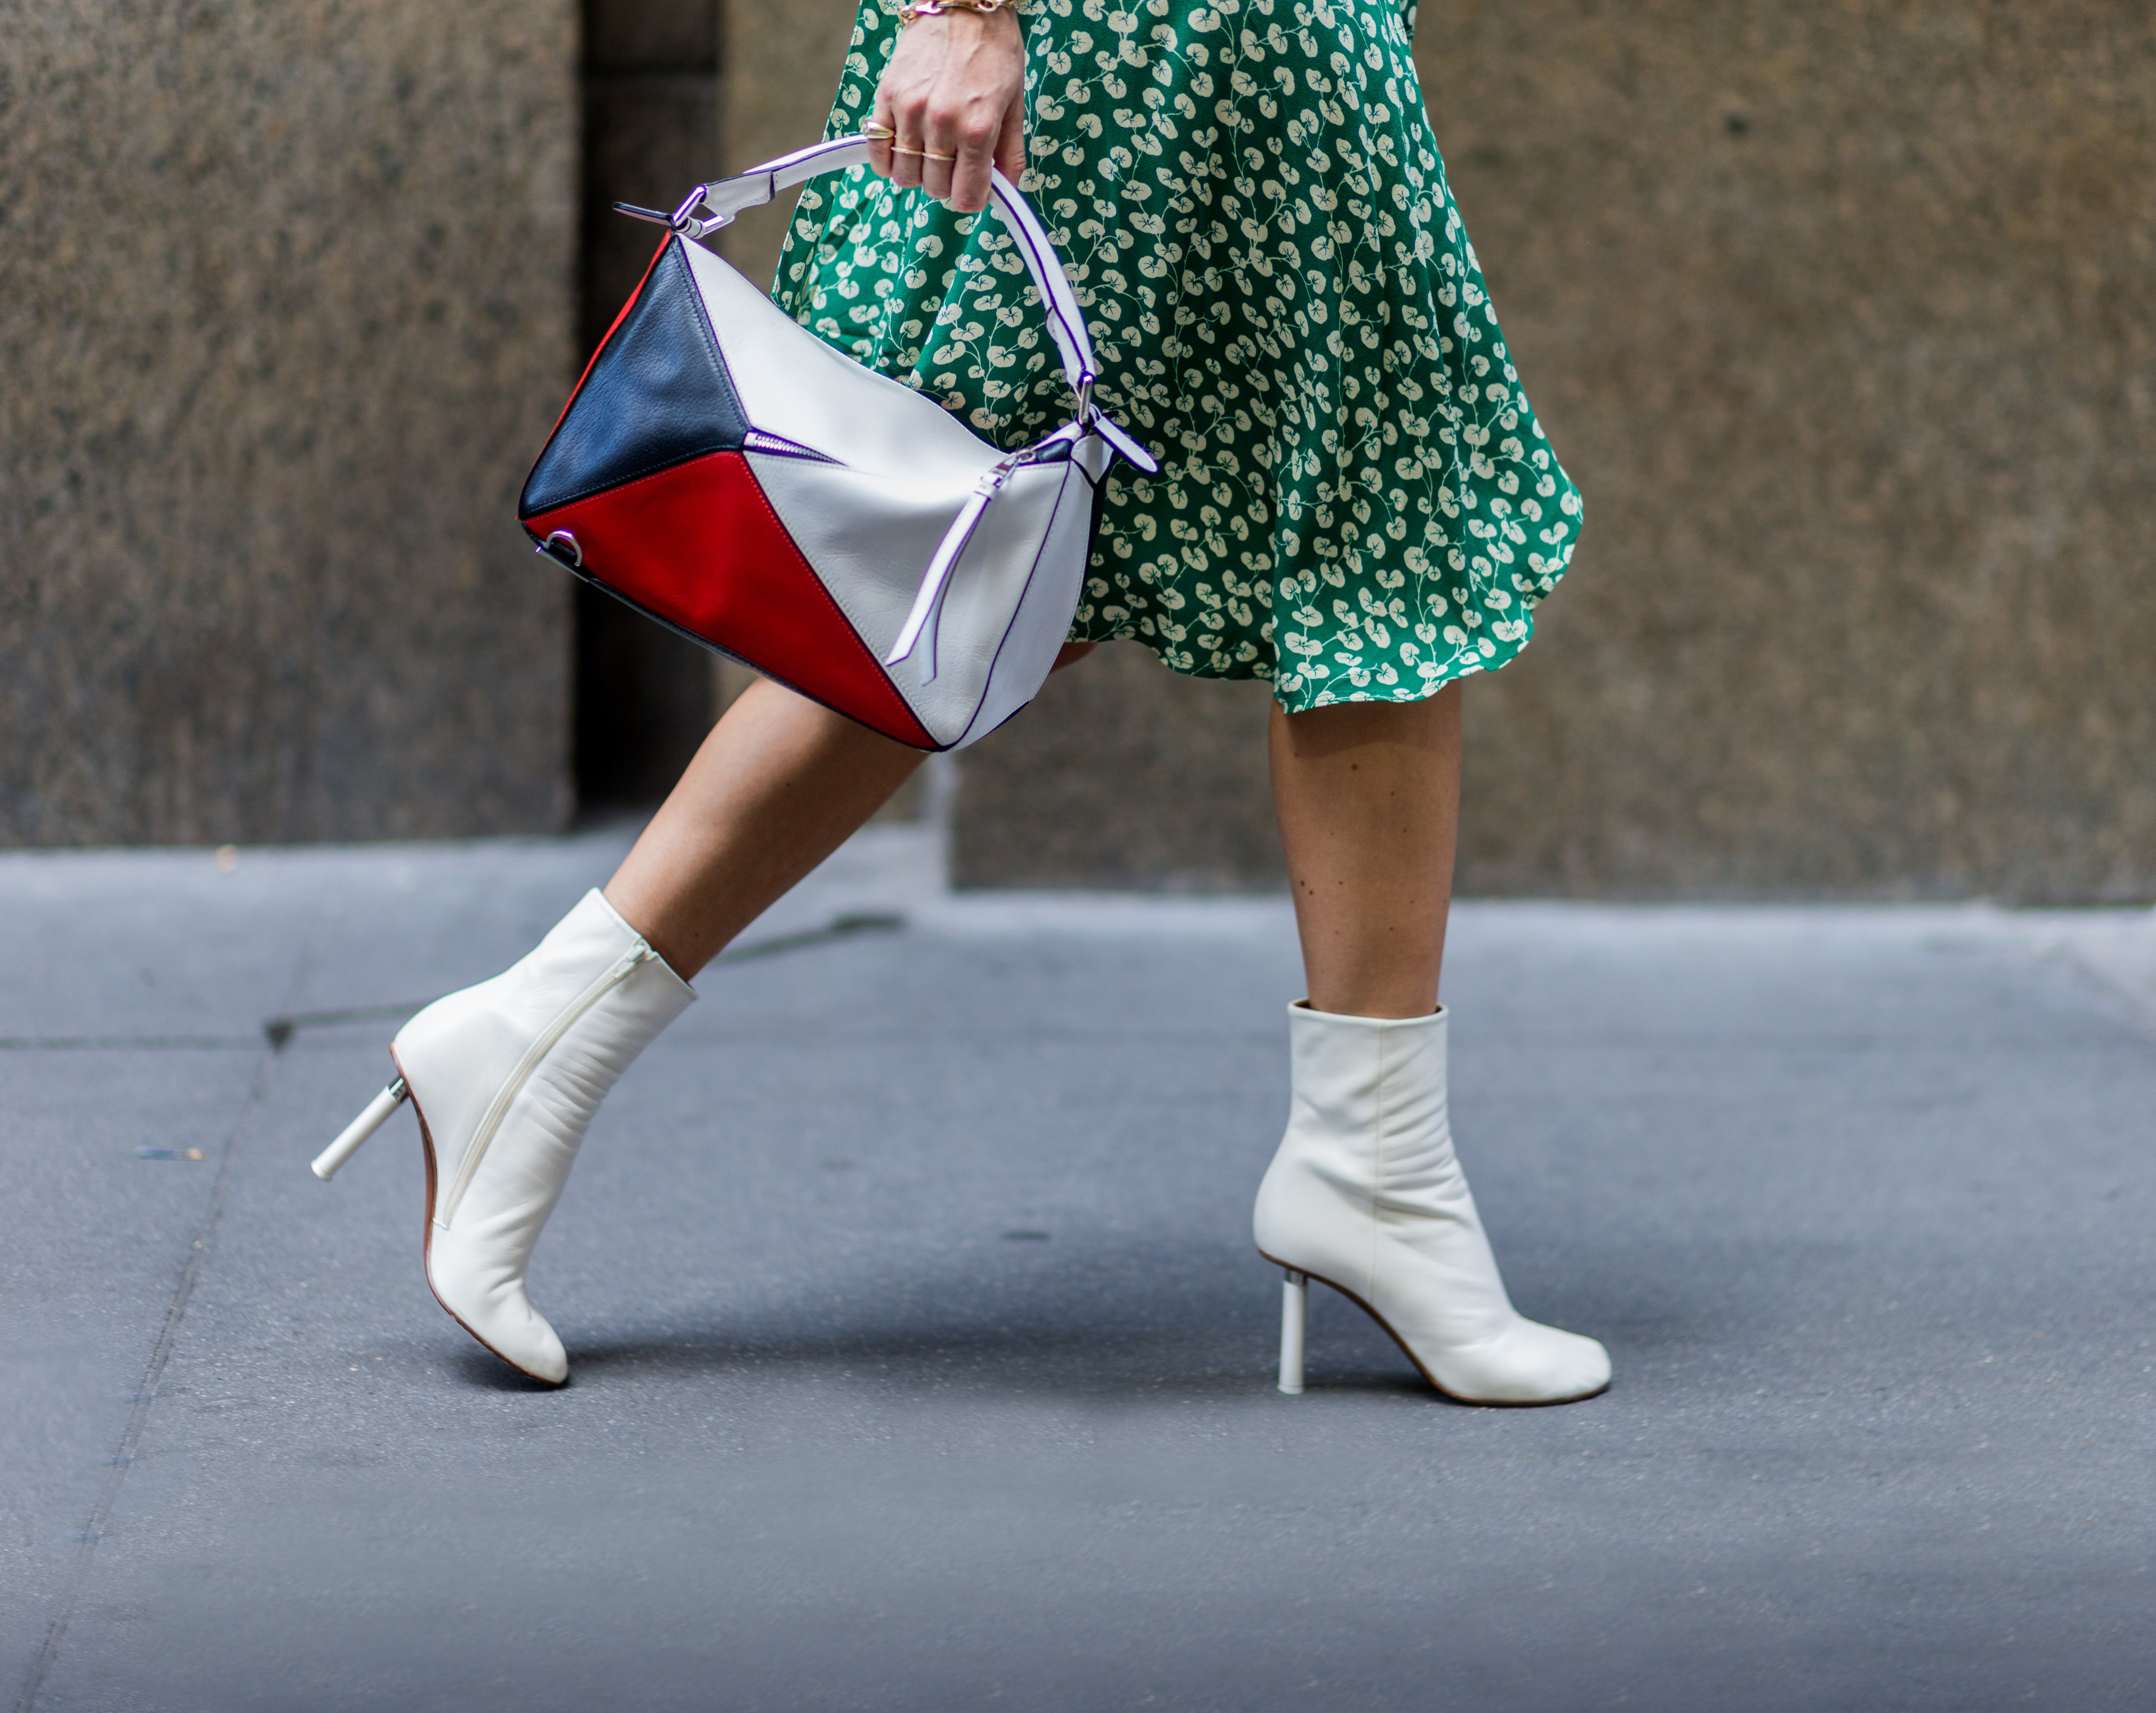 65f5c0c64ab7 Why Women Love Loud Shoes - Racked